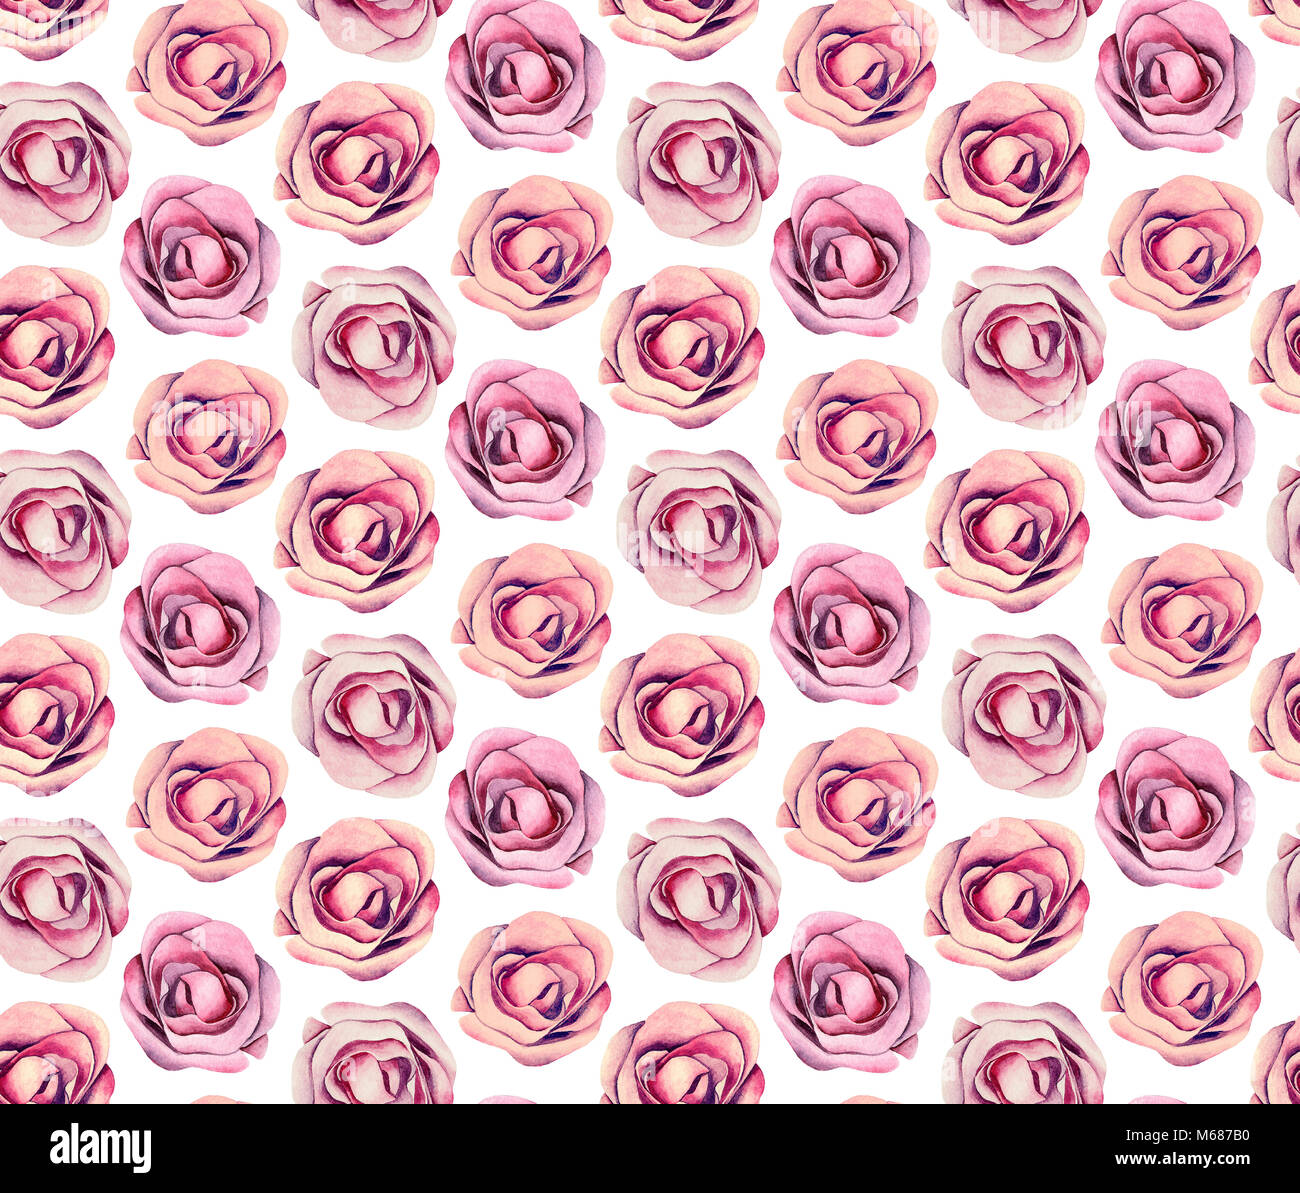 Boho Chic Floral Pattern Watercolor Pink Roses Flowers Background